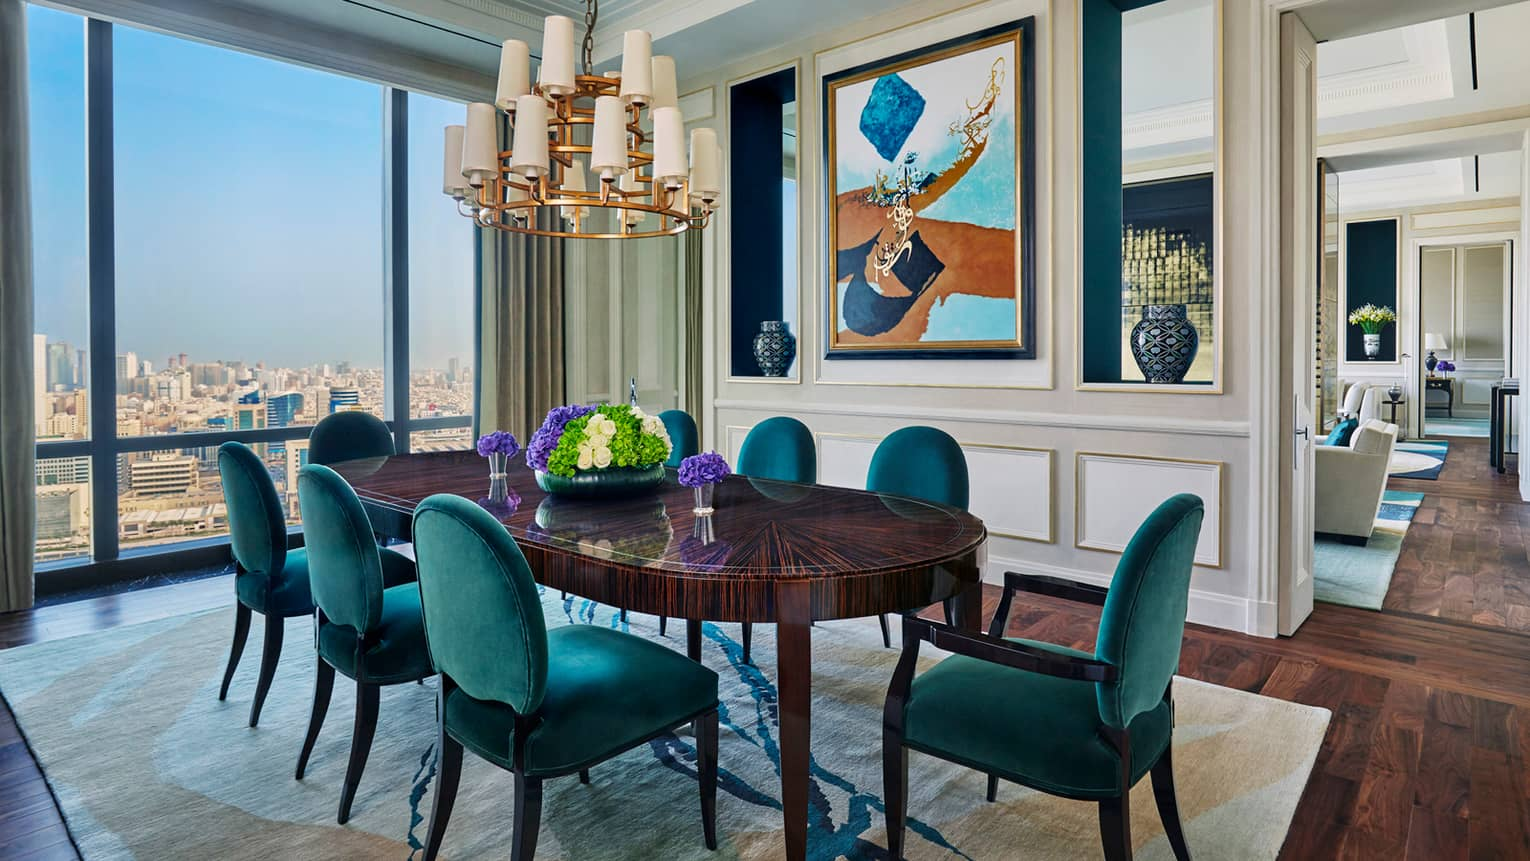 Hotel room 1930s-style 8-person dining room table with maritime green velvet chairs, chandelier, window with city view